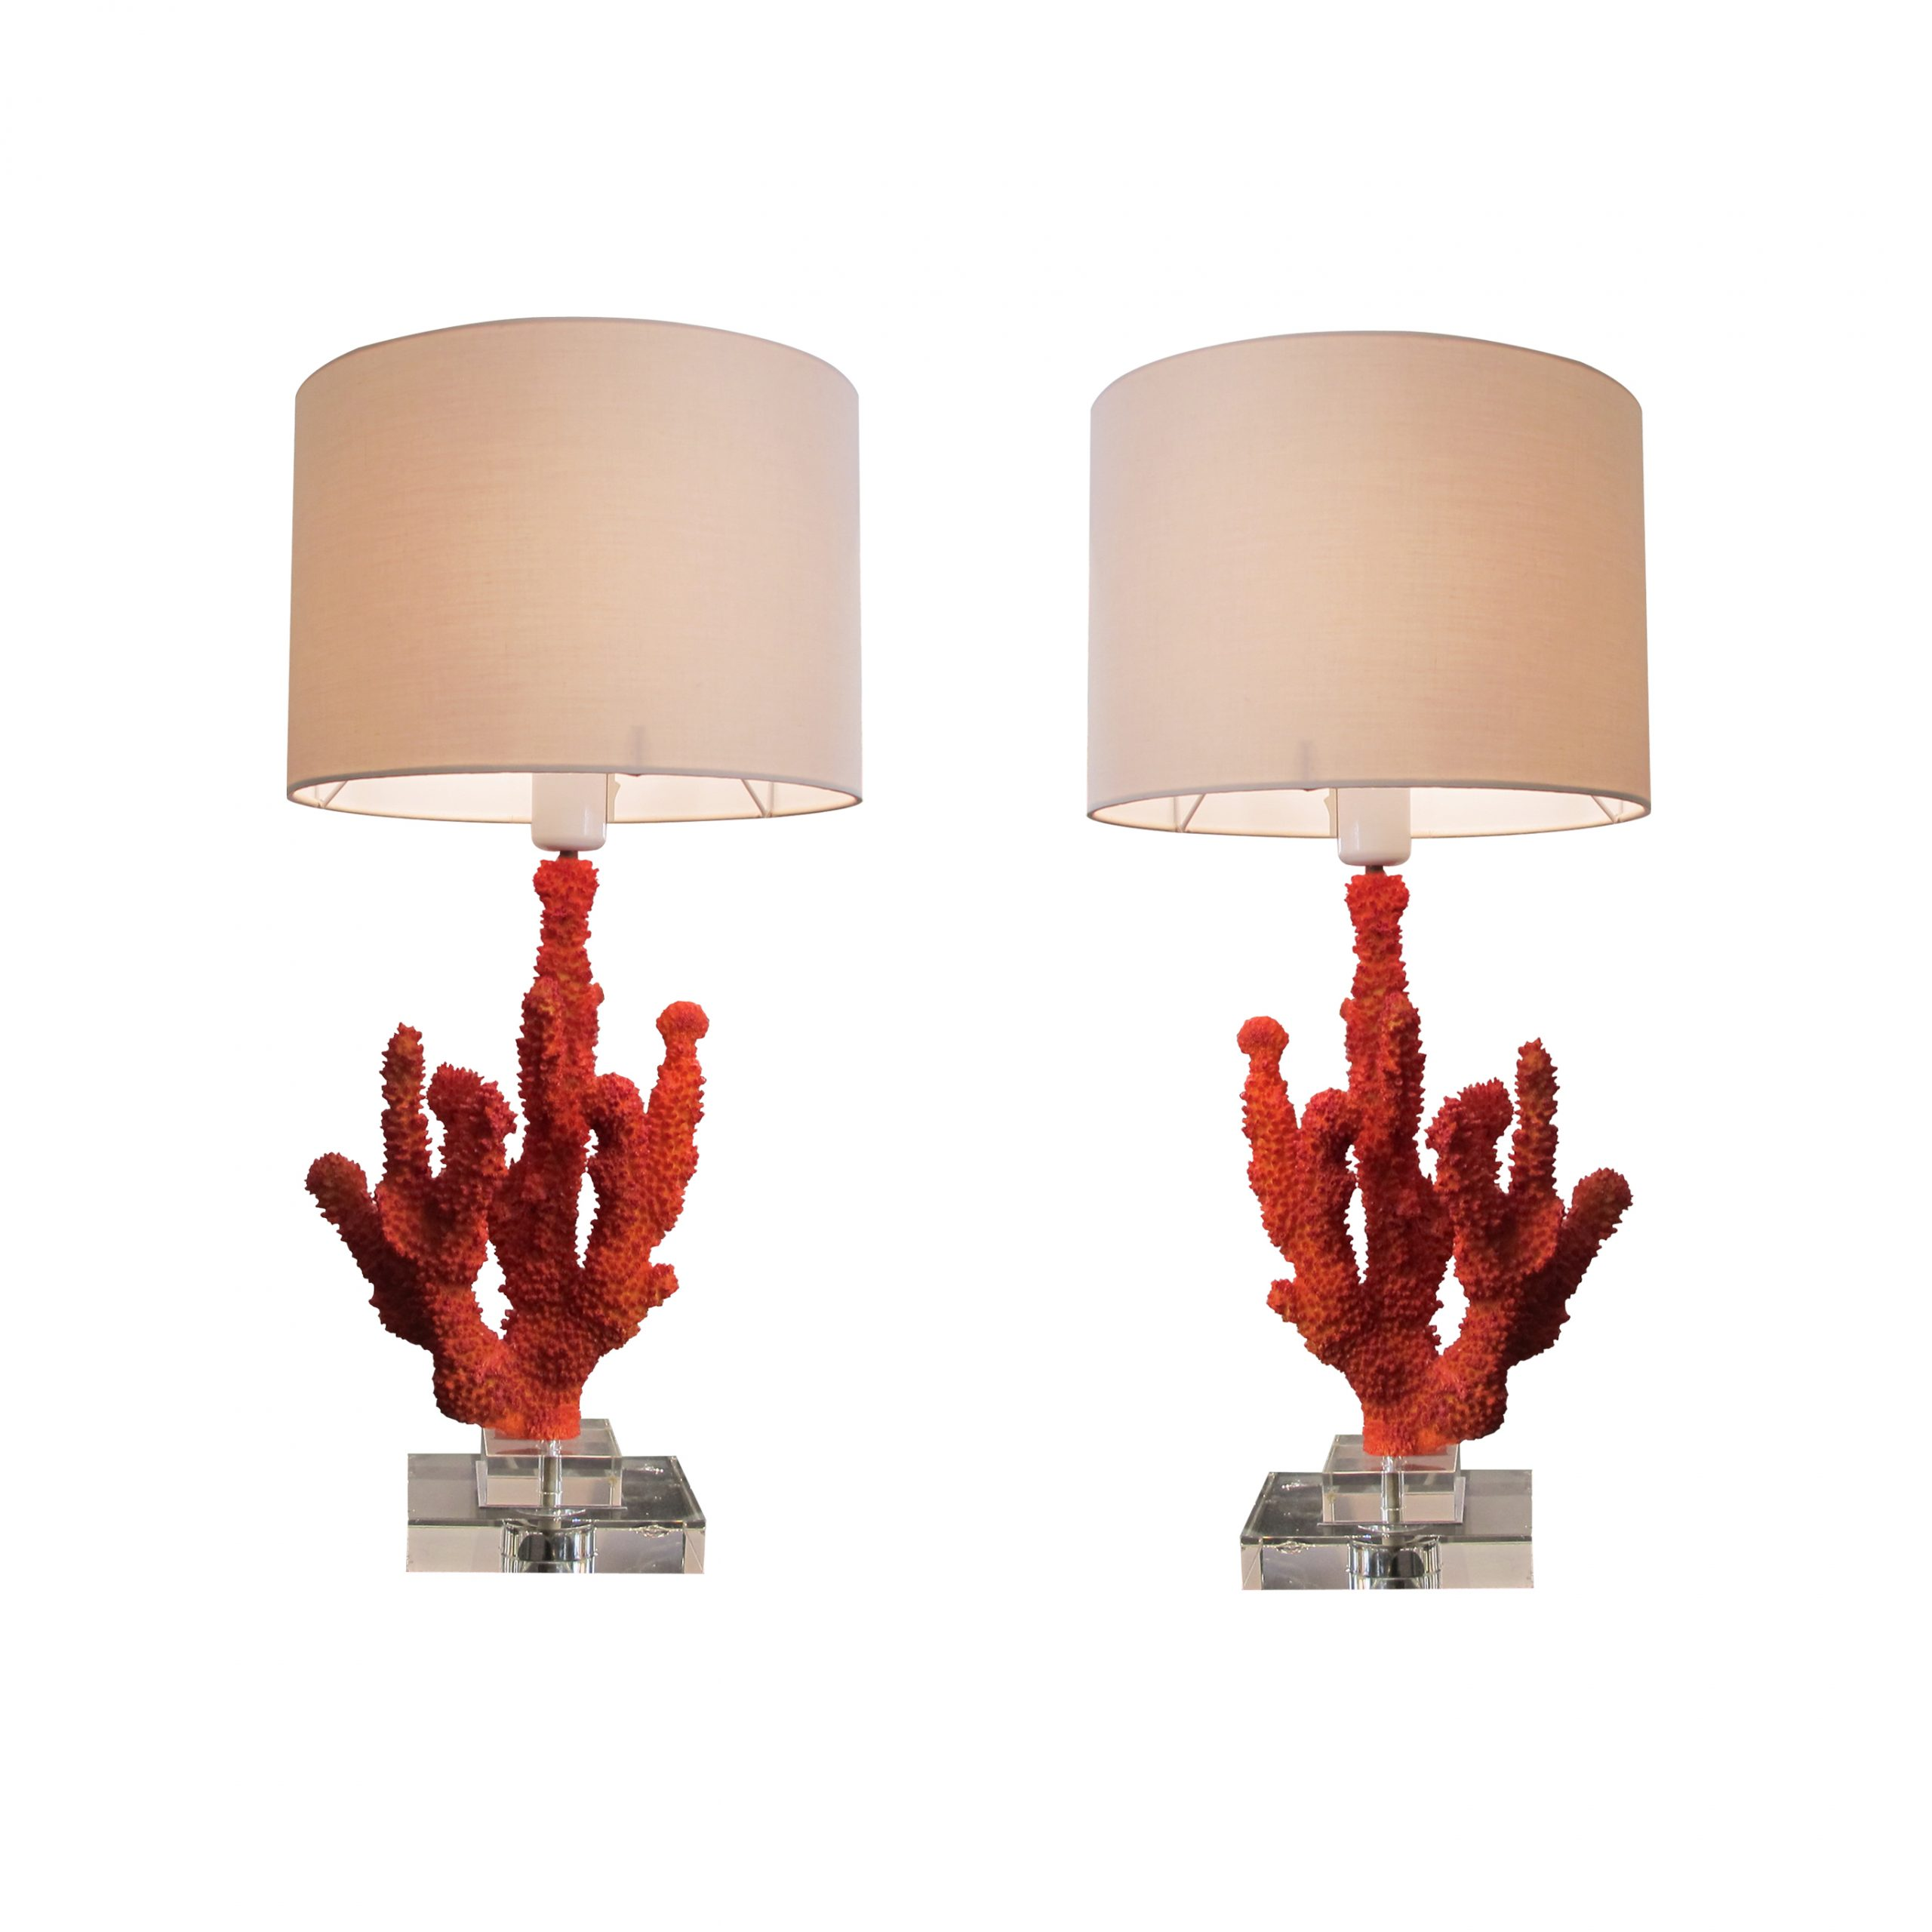 A pair of resin red coral table lamps